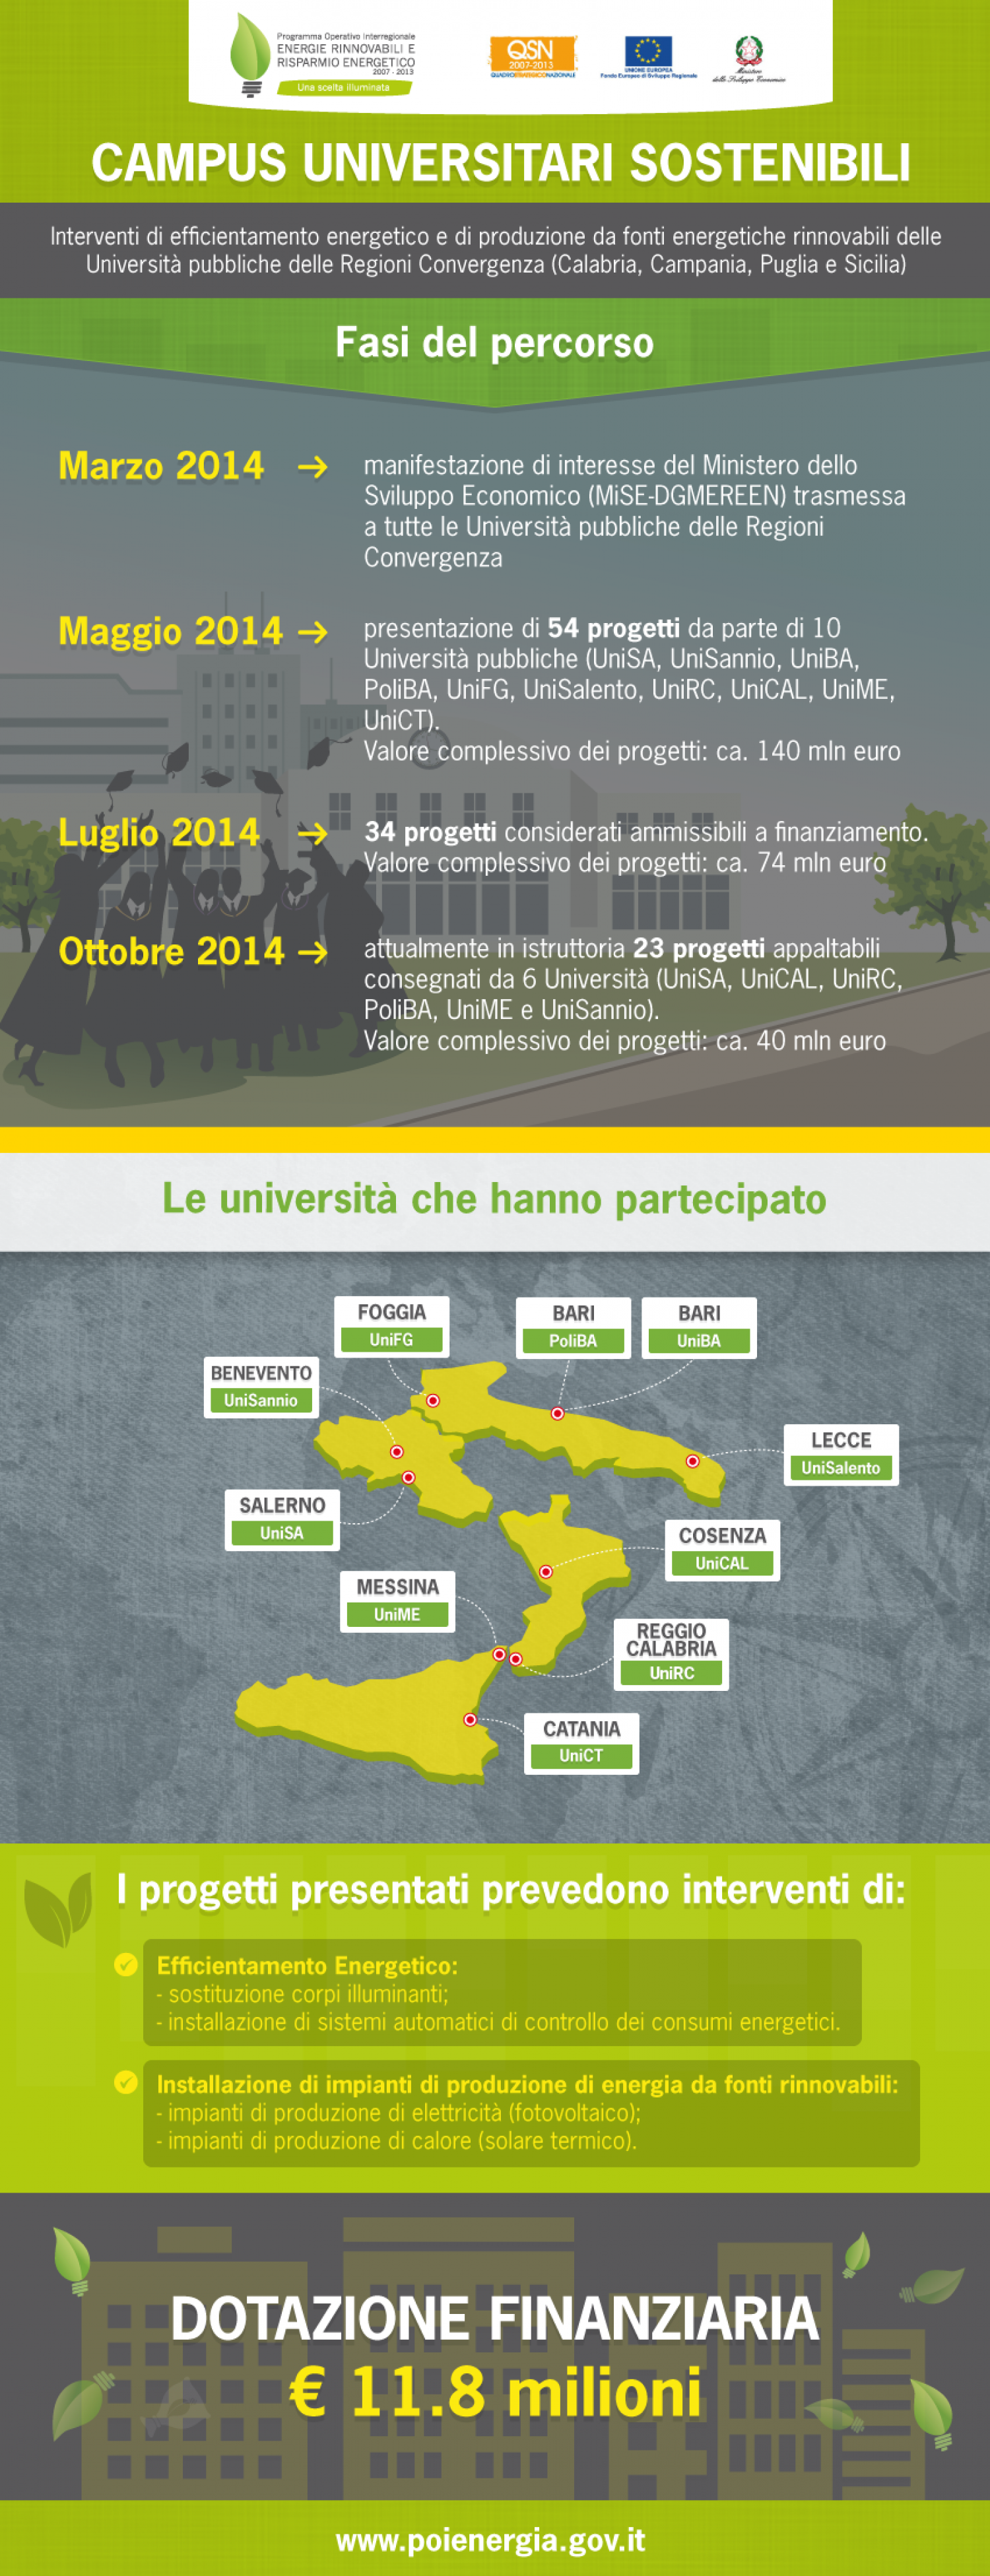 Campus universitari sostenibili Infographic